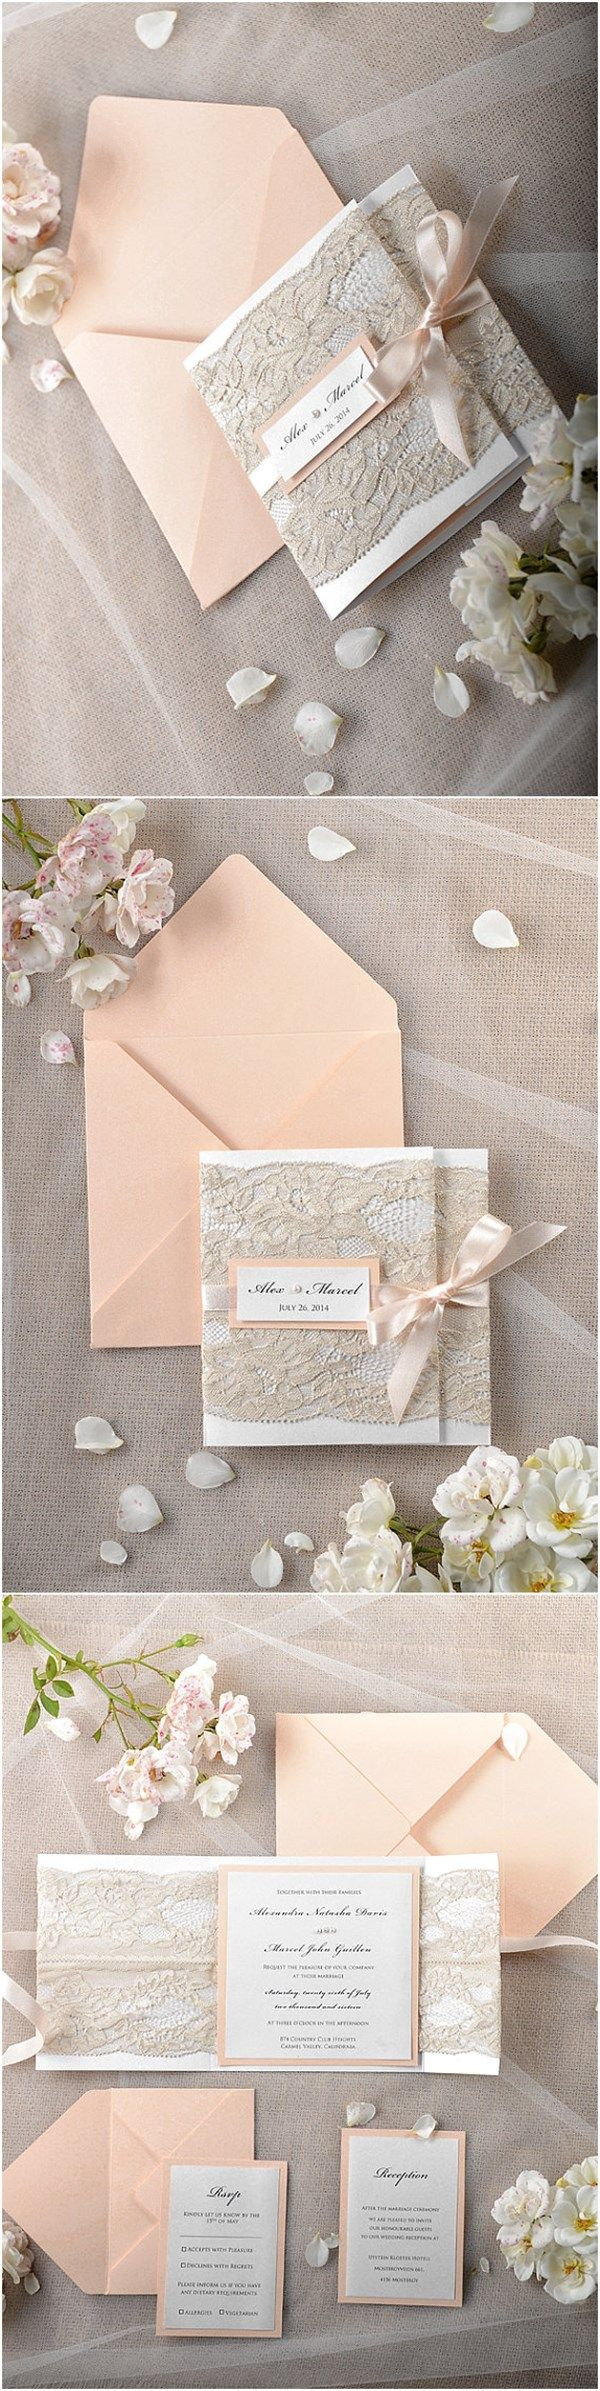 Pin by sandy hanna on Wedding cards | Pinterest | Wedding ...